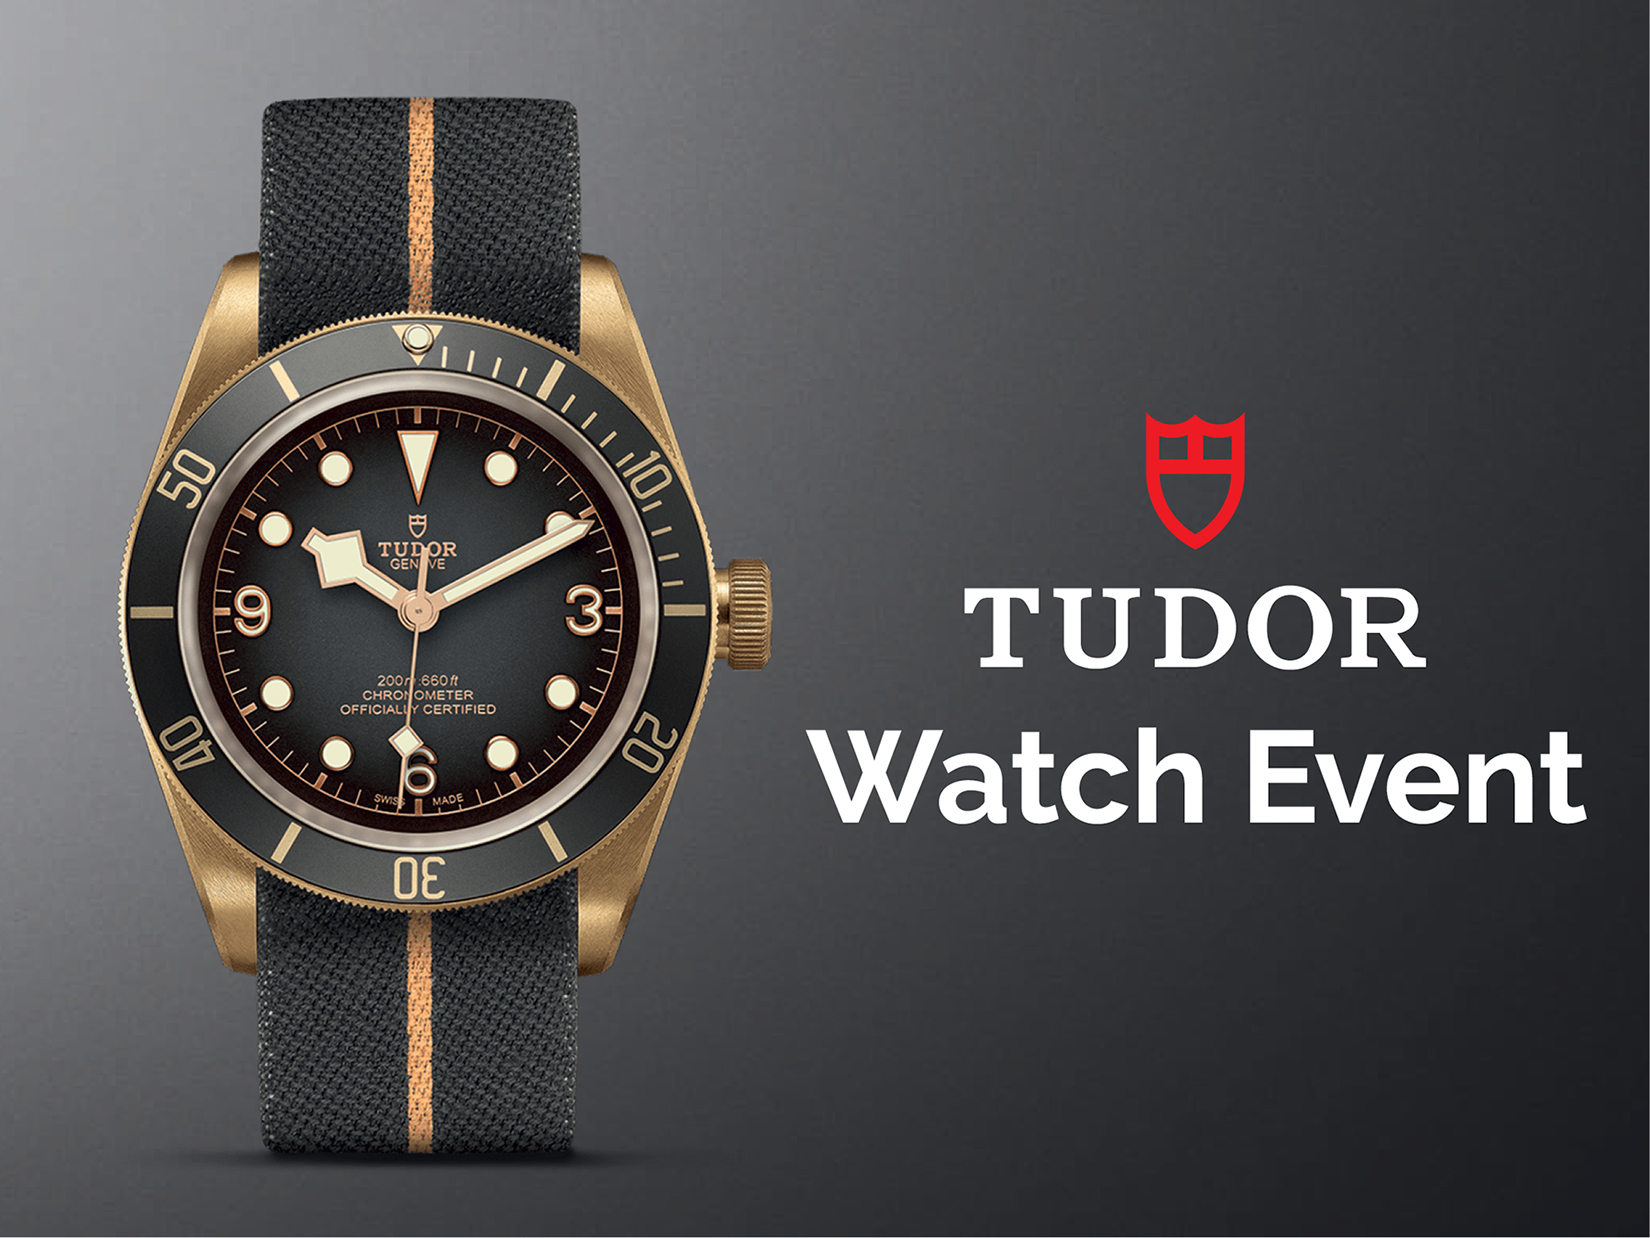 Tudor Watch & Scotch Event